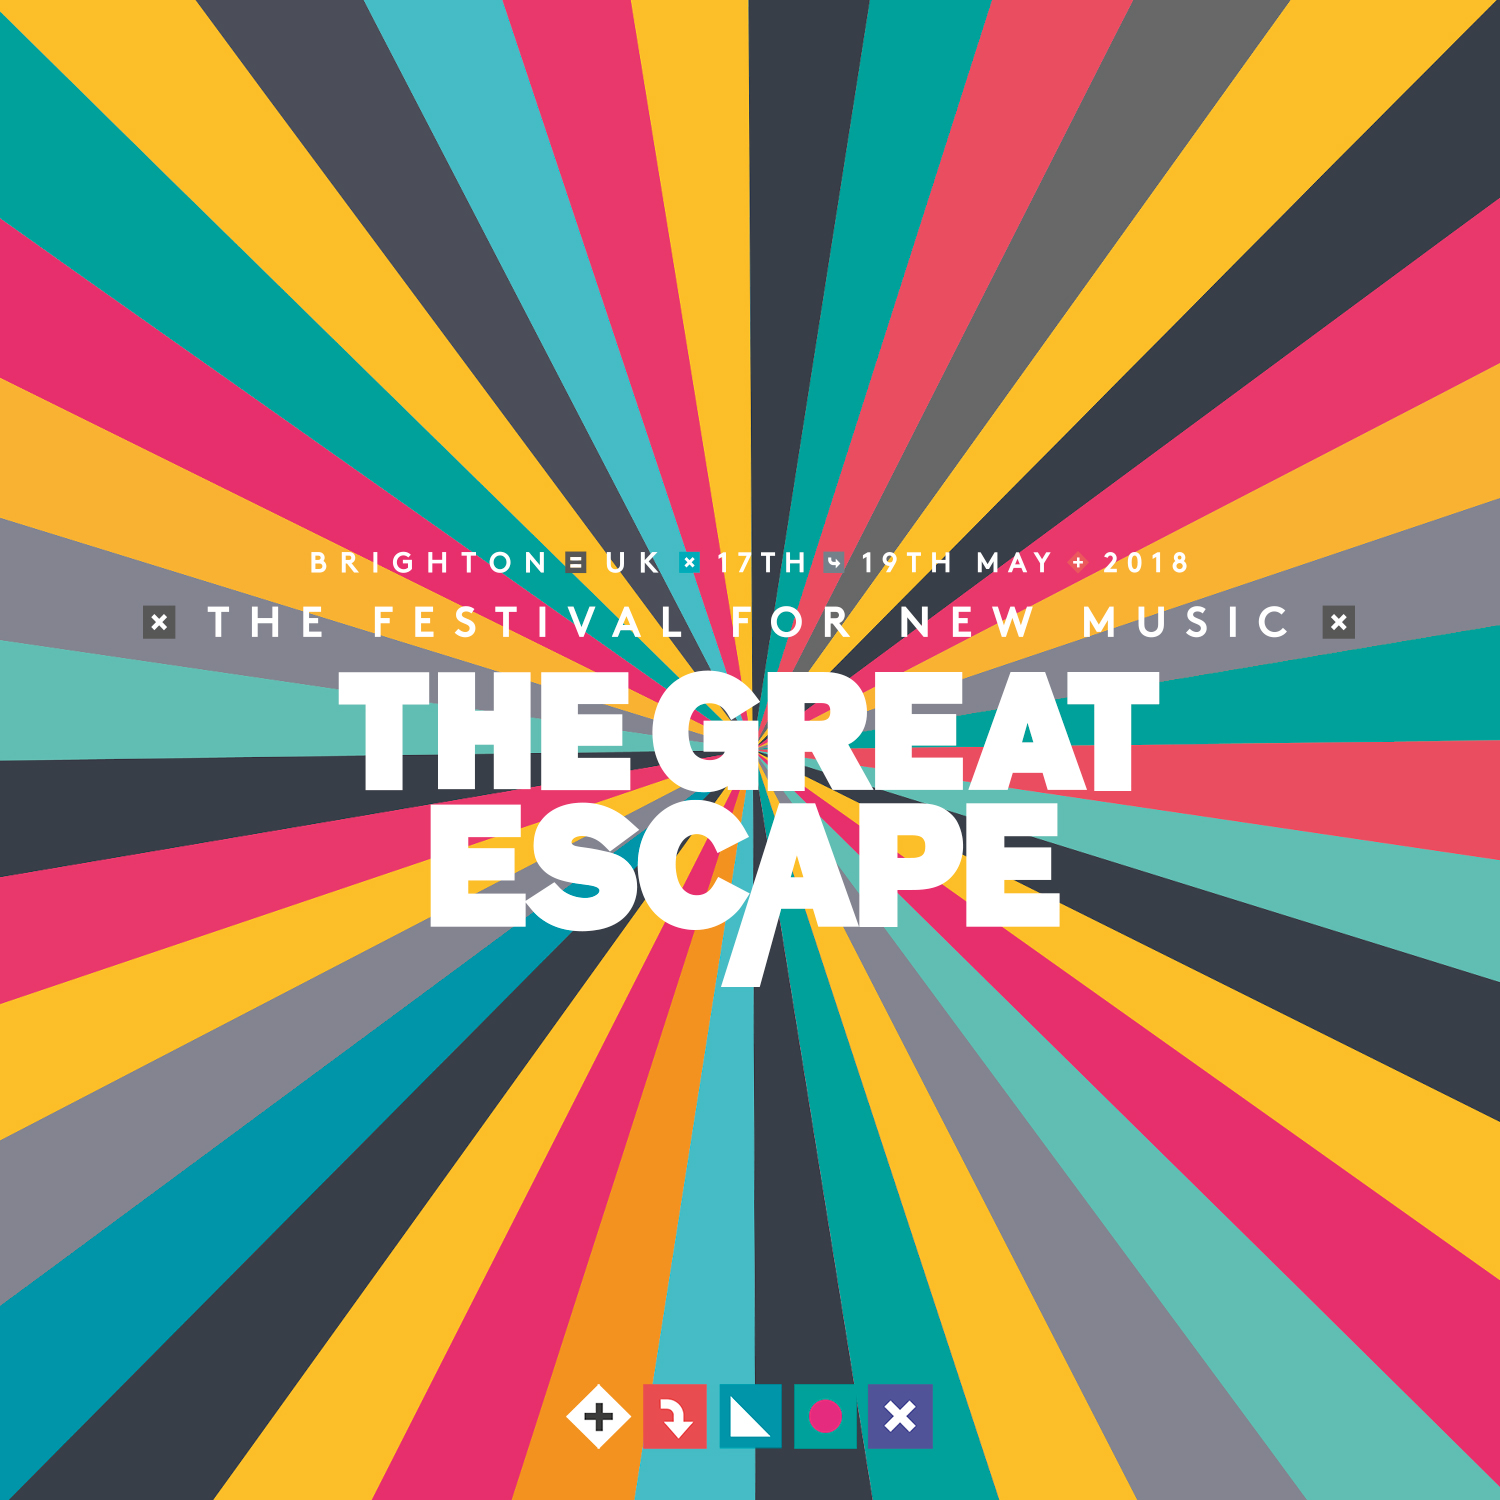 WIN! A Pair of tickets to 2018's Great Escape Festival in Brighton!